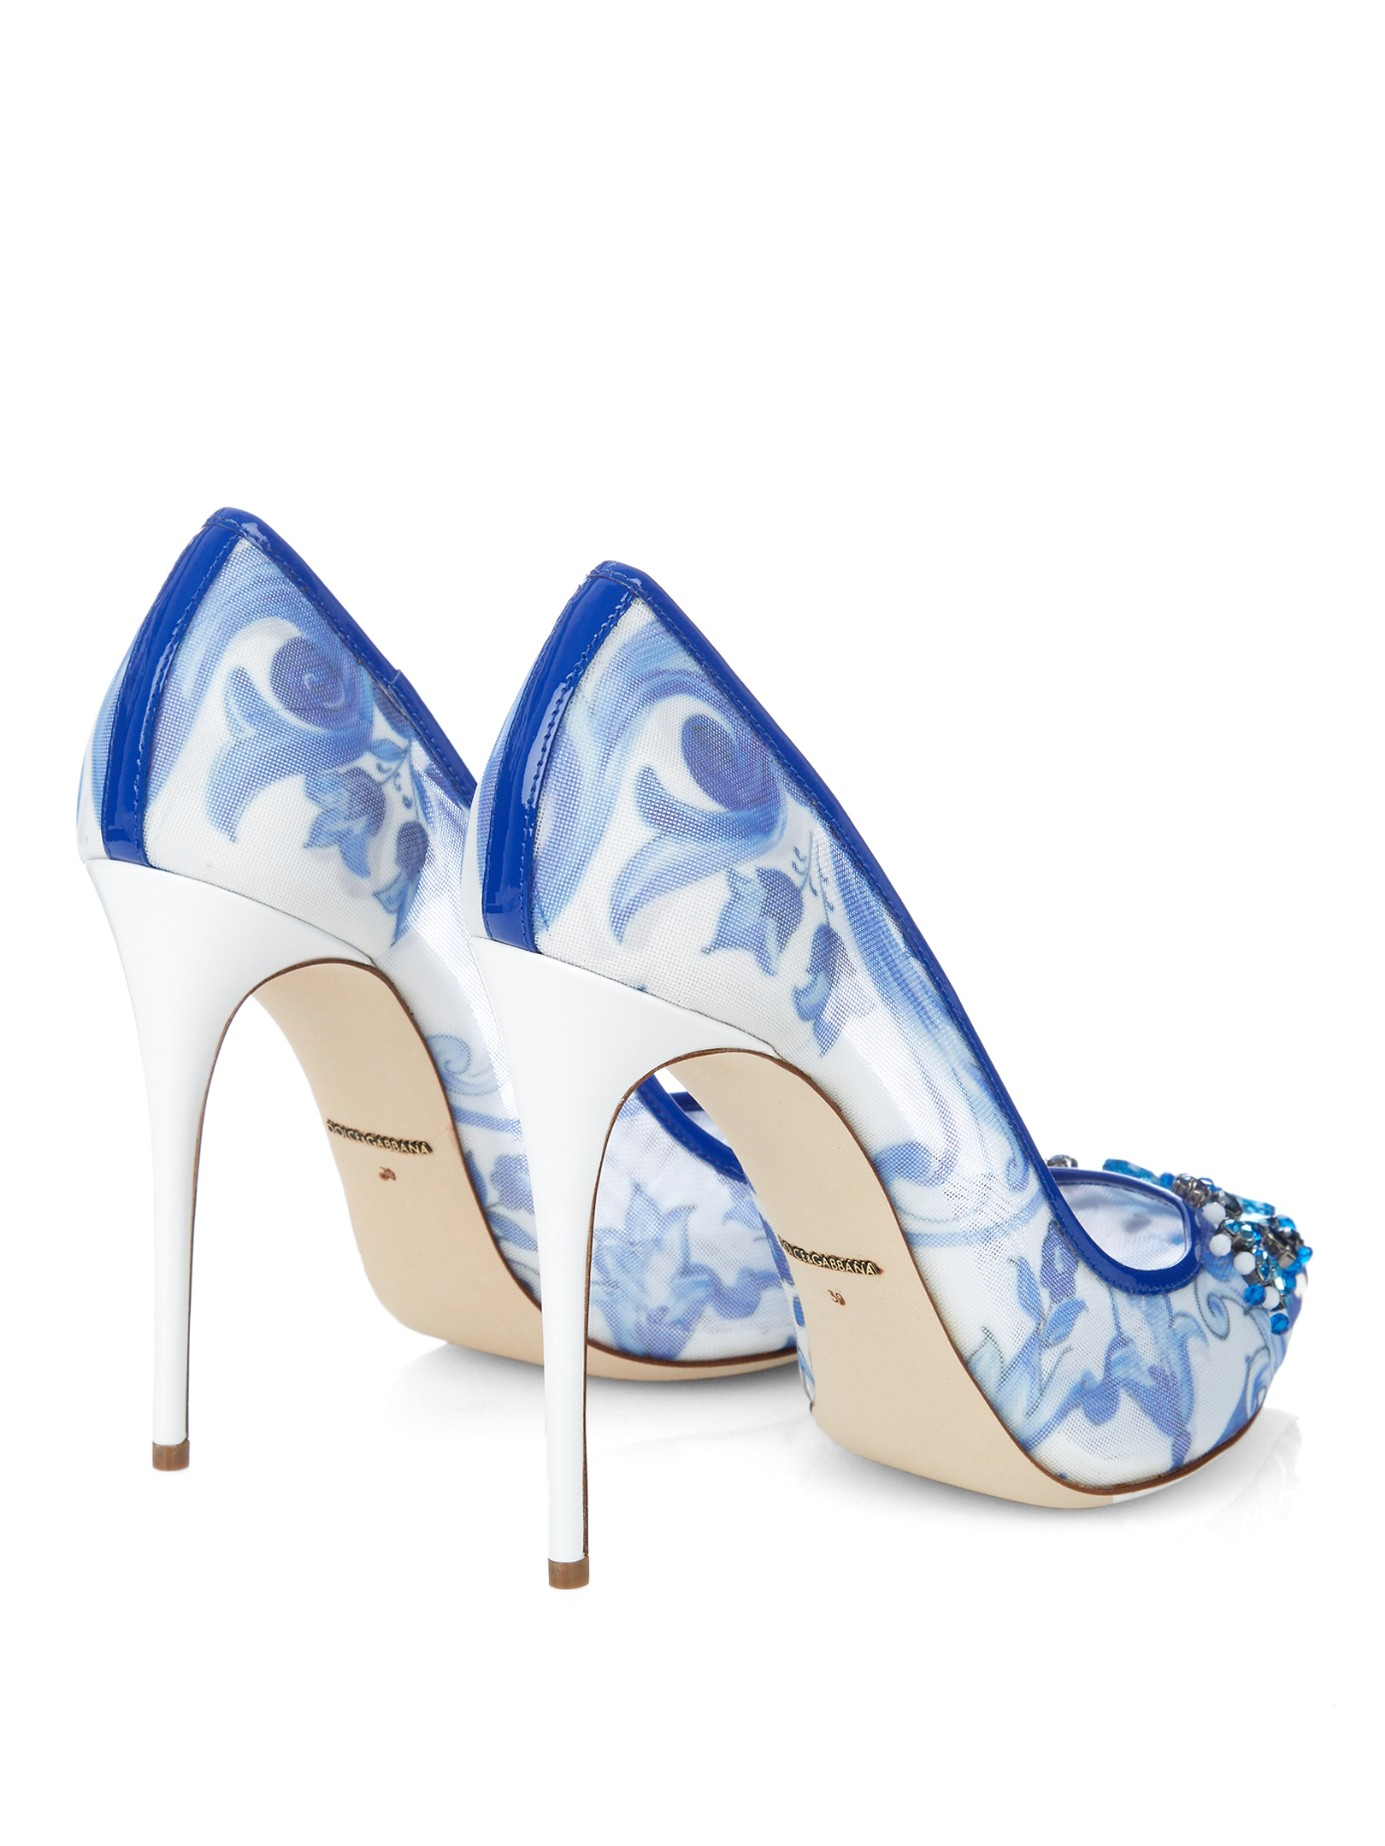 White And Blue Heels